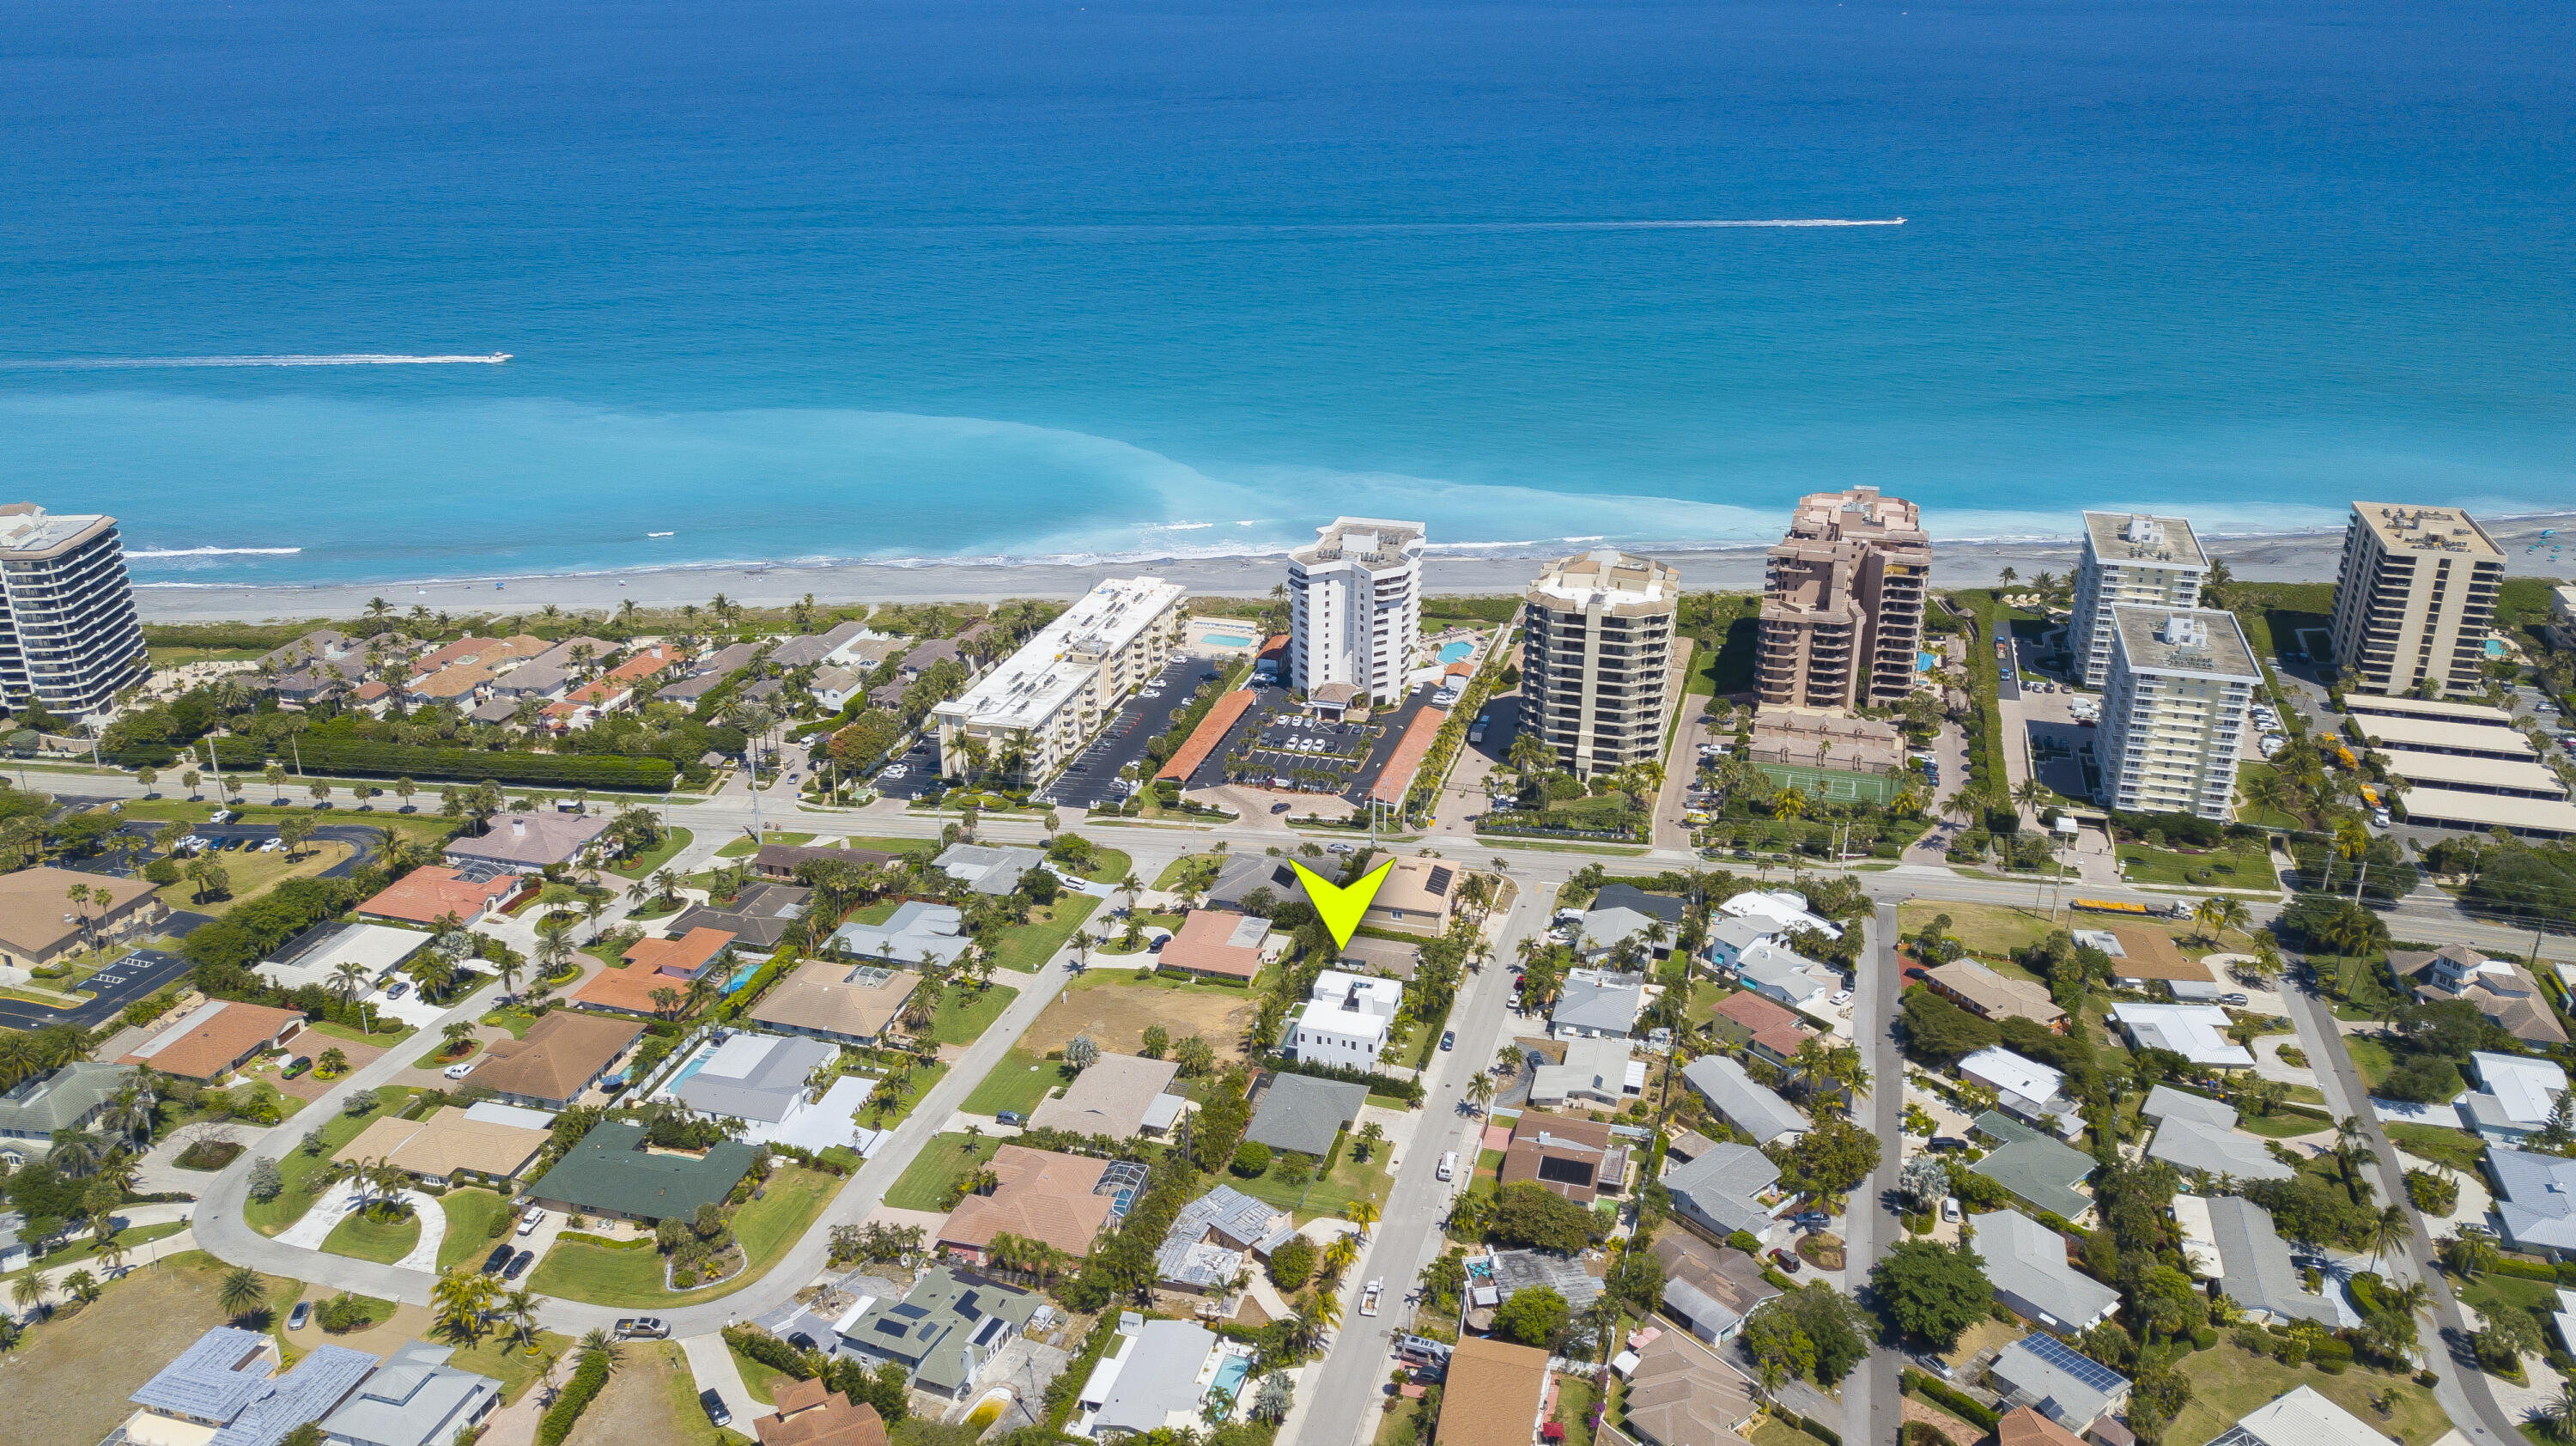 Rare opportunity to purchase modern 2018 built residence steps away from the sand of Juno Beach! Designed with style, innovation and functionality, this FULL-TURNKEY 3,613 AC sf residence with 4 bedrooms with on-suite bathrooms, powder bath, over-sized loft, & 2 car garage pool home, being sold with brand new designer, high end furnishings through out and all new custom window treatments. This residence features an open floor plan concept with high ceilings, an elevator that goes to the roof-top terrace. Enjoy nice ocean views from the master bedroom, balcony & rooftop. The gourmet island kitchen features modern designer white cabinetry with 6 cm azul calcite countertop on perimeter & extra white Caesar stone island with waterfall feature; SS Thermador 36 inch gas cooktop & triple combo built-in oven & Viking refrigerator. The master suite boasts of 2 over-sized walk-in closets with custom shelving, a luxurious bathroom setting, with his-&-her custom floating vanities, designer stand-alone tub & private balcony access with ocean views! This home features the latest state-of-the-art smart automation system, Kirio that can be controlled by your wireless device such as iPhone, tablet, etc. Built exceptionally well with all poured concrete & steel reinforced CBS tie-beam construction in the walls & between floors, using the Hambro system, the property is elevated about 27 ft above sea level, with hurricane impact resistant windows & doors throughout. The private backyard setting features a heated salt water pool with decorative wall & the perimeter hedges & tropical palm tree landscaping compliments the clean lines of the house. The entire home is a demonstration of the highest level of clean, contemporary finishes & the finest workmanship. This home was just professionally furnished and decorated with exceptionally taste and style, and is now move in ready. Other recent upgrades include extended ipe wood decking in roof top terrace; new custom fence and front gates to 